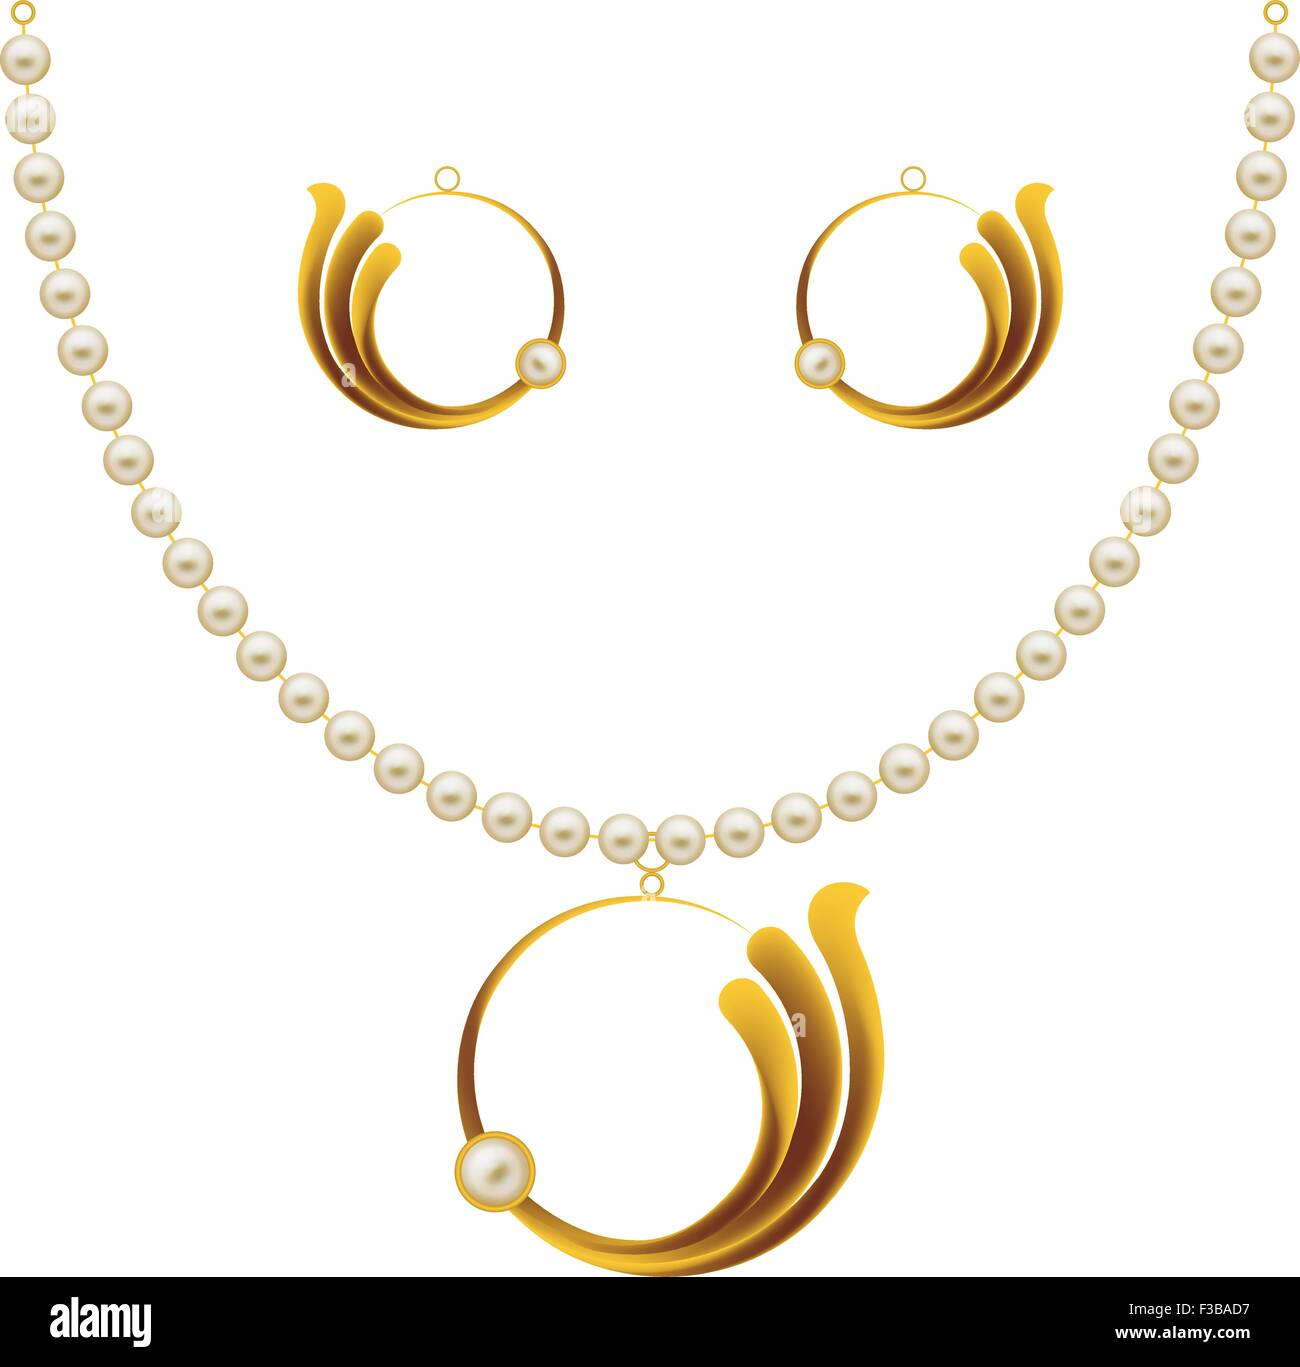 Pearl Gold Jewellery Necklace, Earrings, Pendent Vector Art Stock Vector